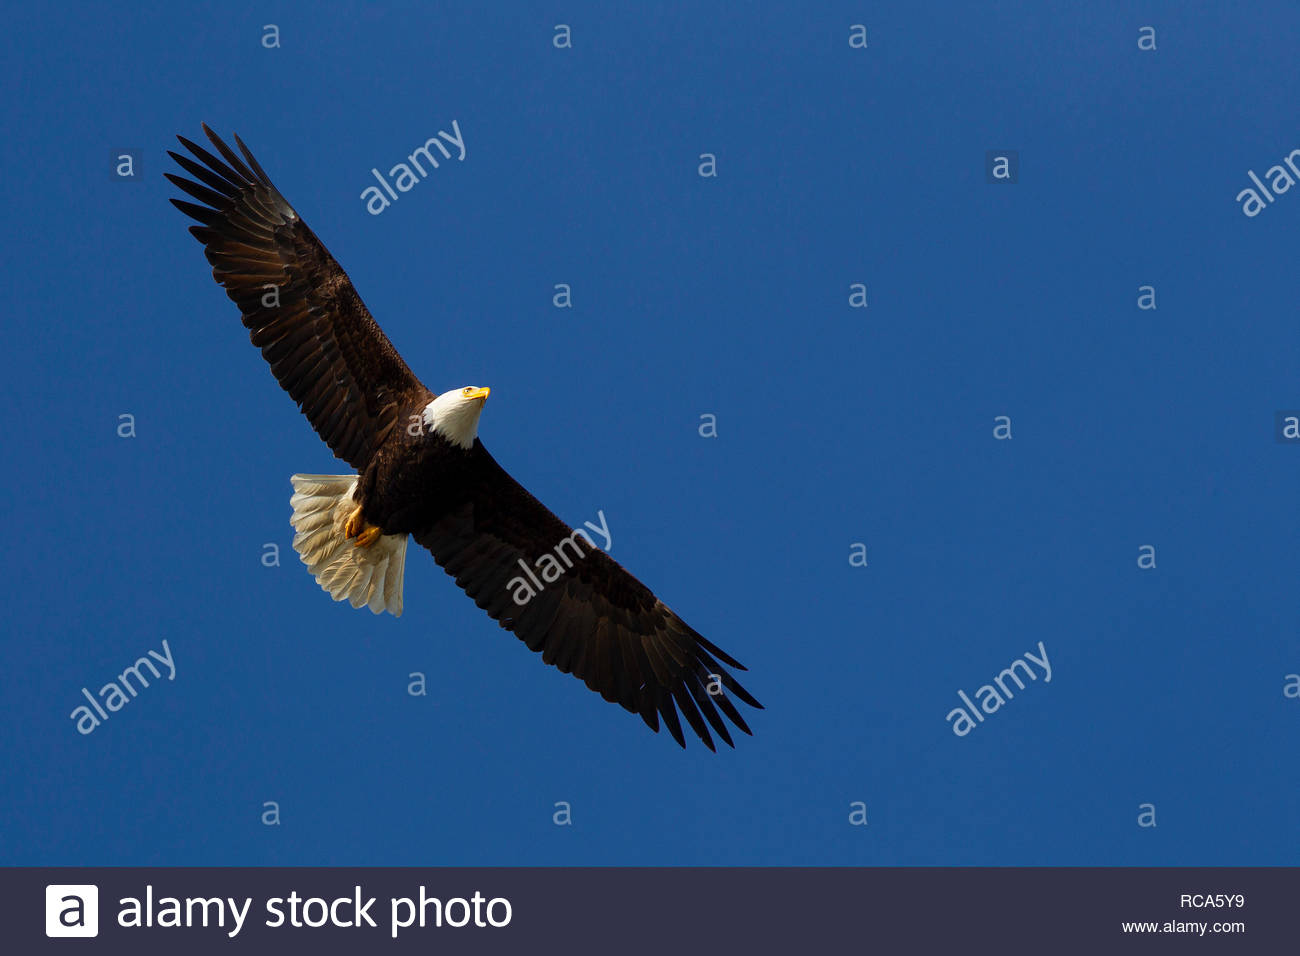 An adult bald eagle (Haliaeetus leucocephalus) soars against the solid blue sky over Drayton Harbor near Blaine, Washington. Stock Photo